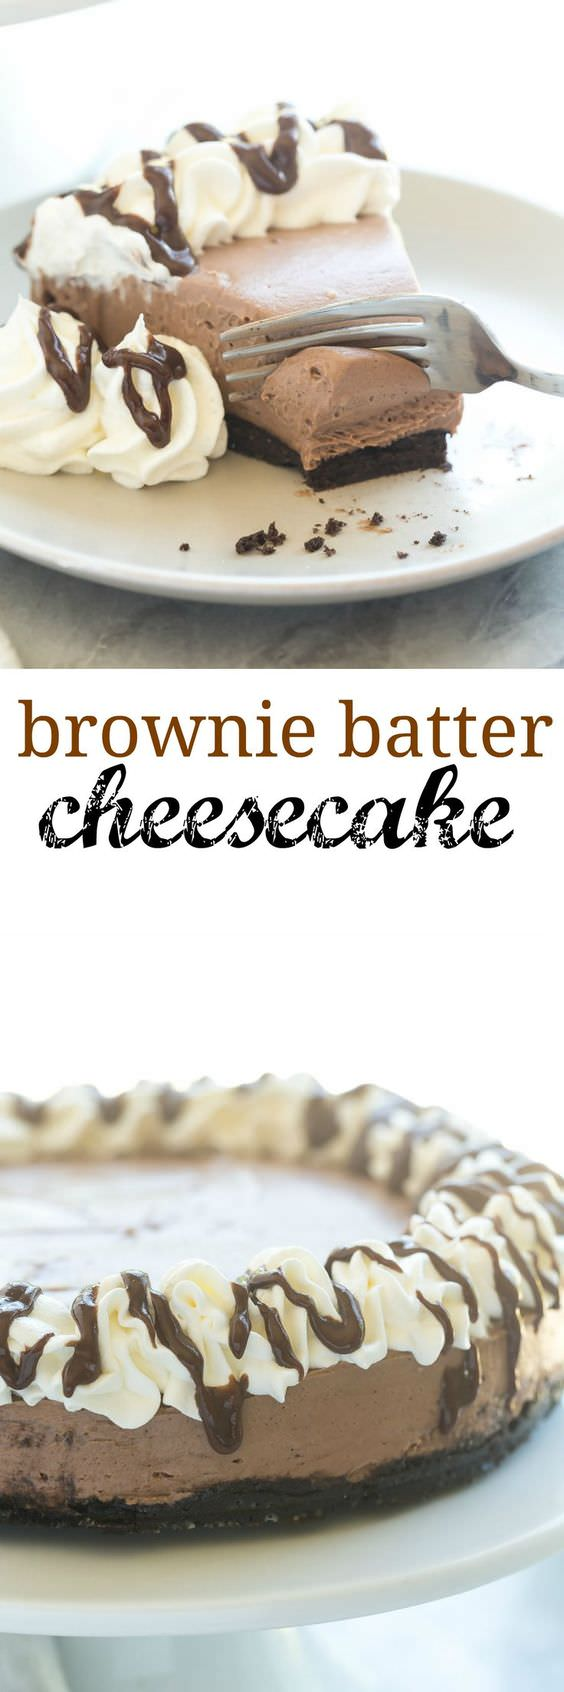 This No-Bake Brownie Batter Cheesecake can be prepared without using an oven. It's rich and fudgy and perfect for chocolate lovers!